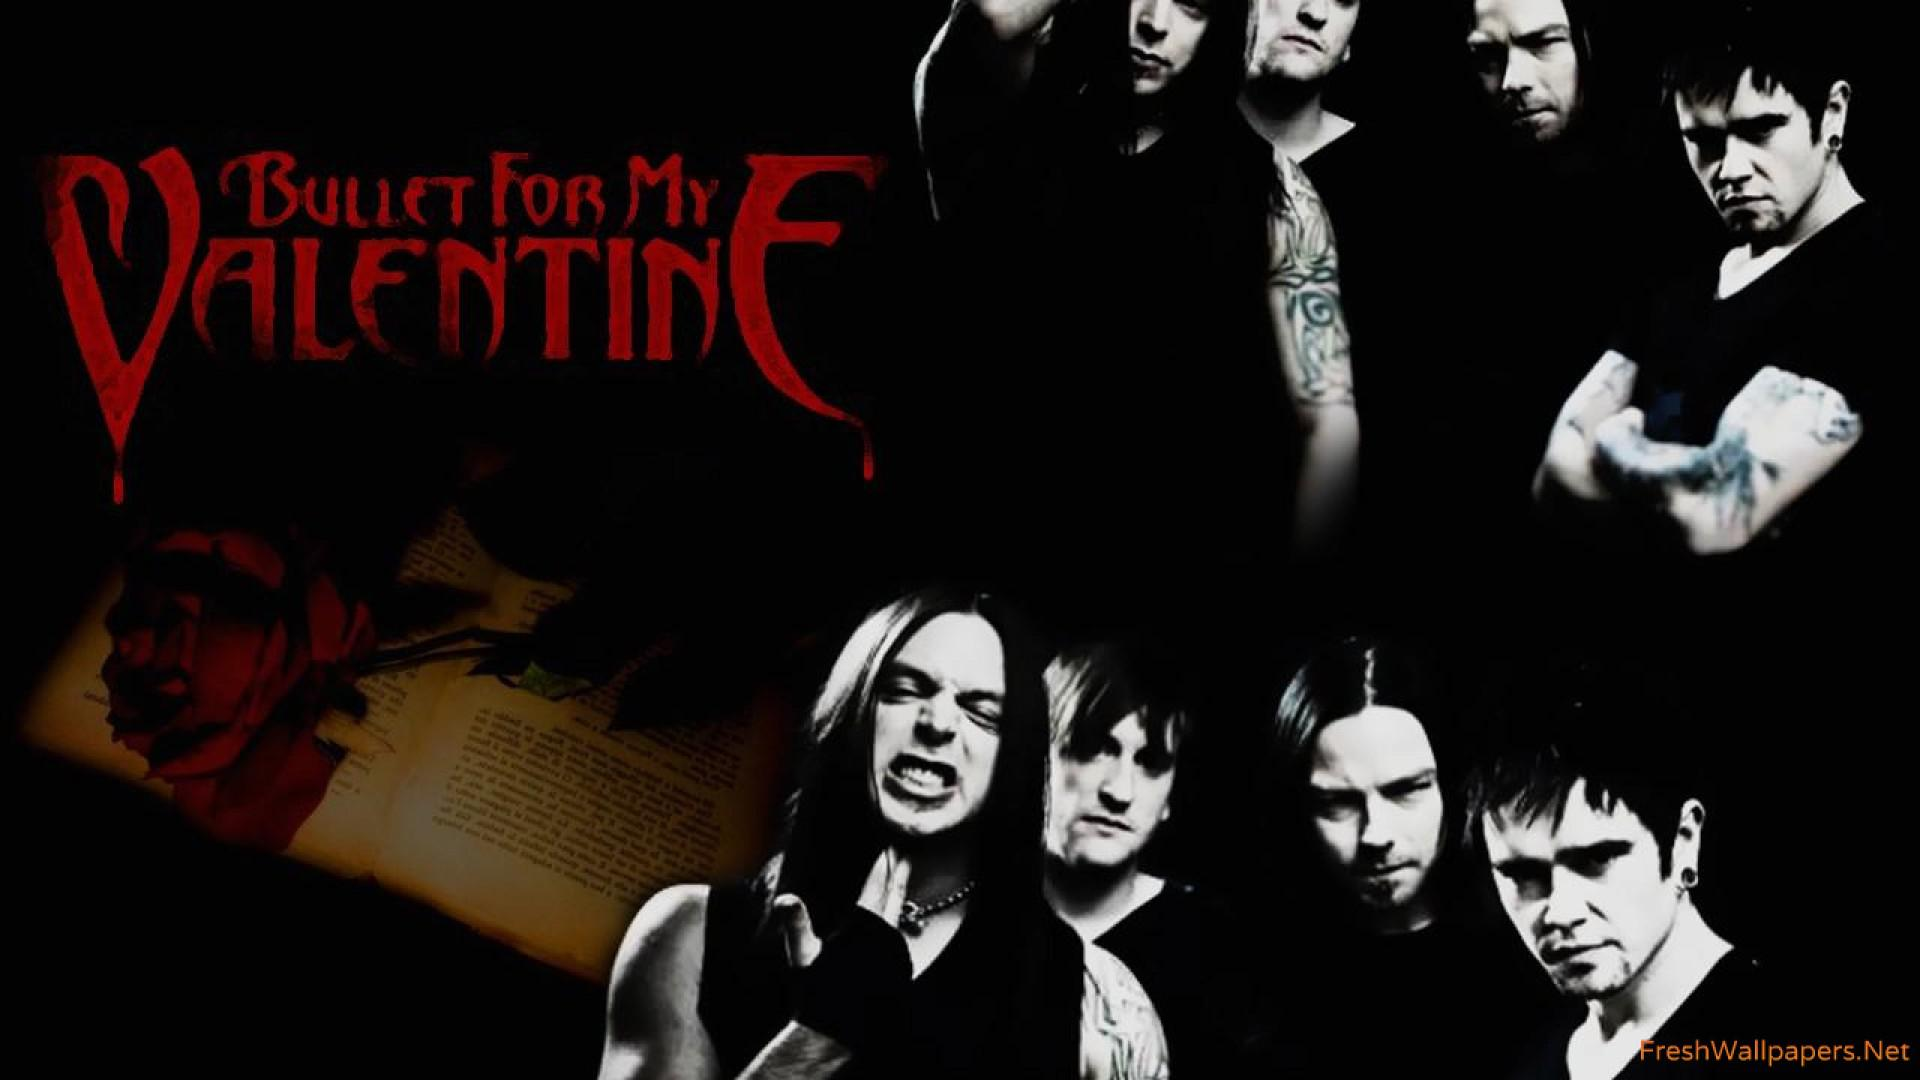 Download wallpaper x bullet for my valentine band members